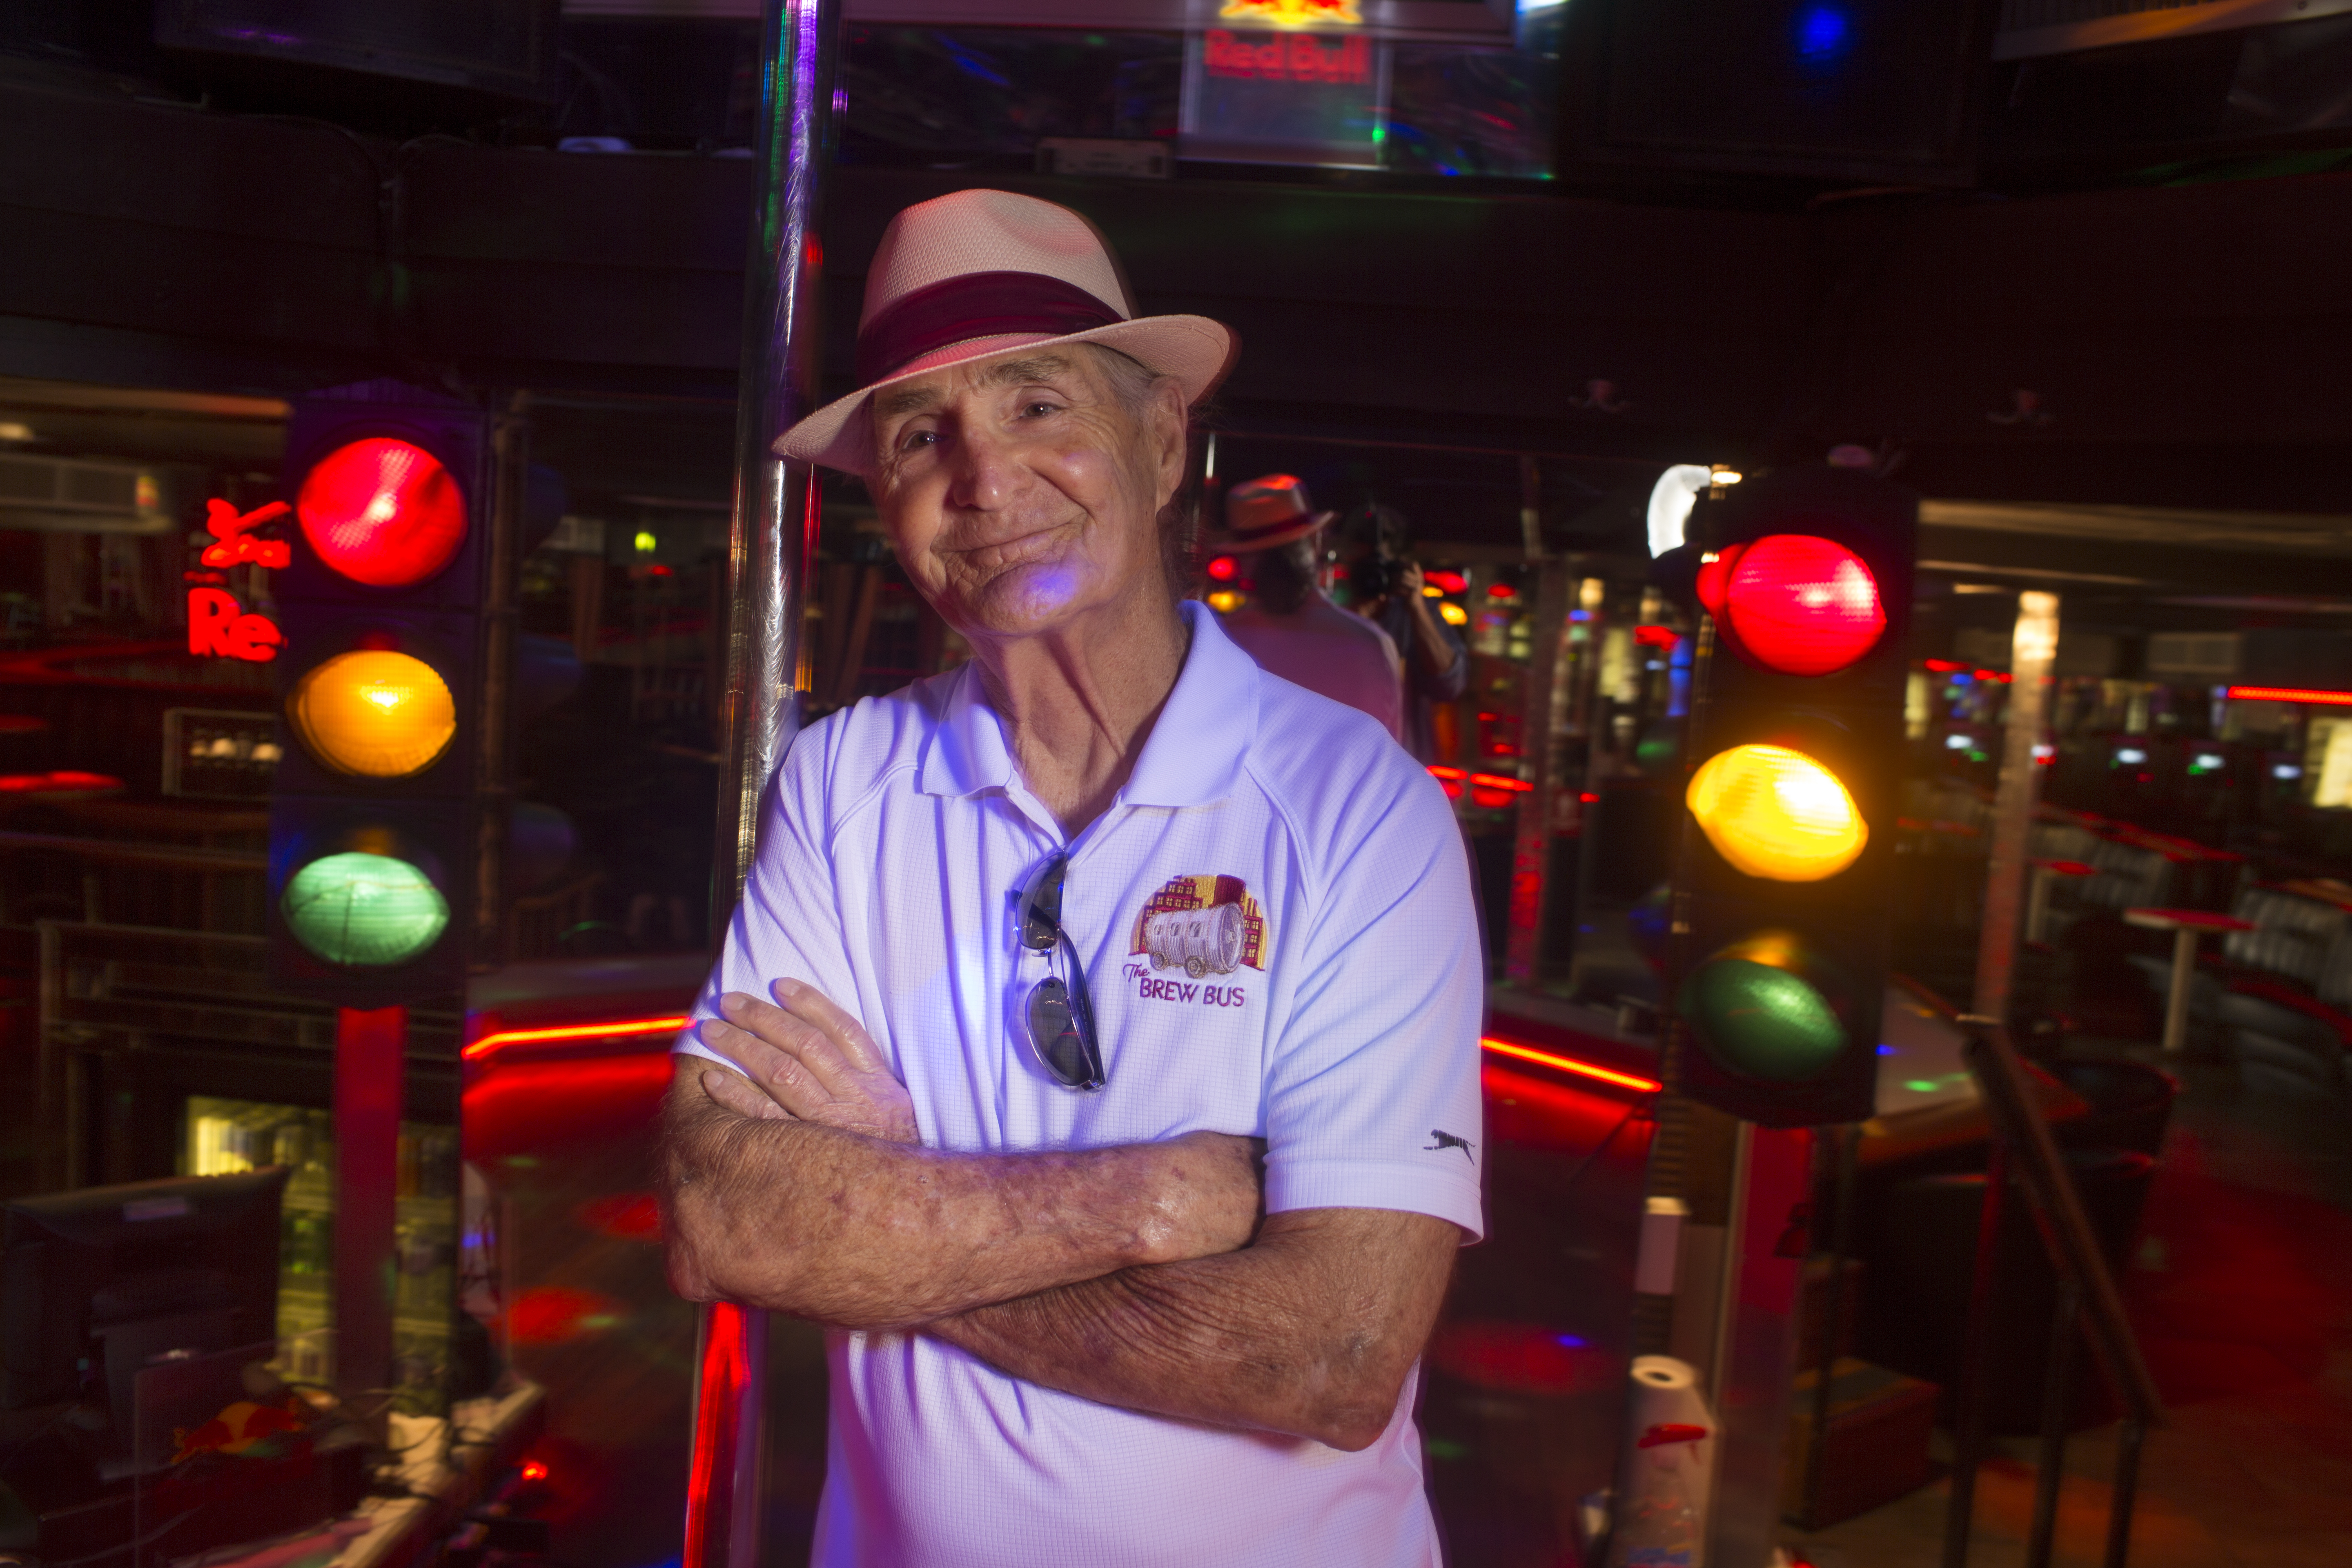 Tampa Strip Clubs >> 9 Things You Didn T Know About Tampa Strip Clubs Tampa Bay Times